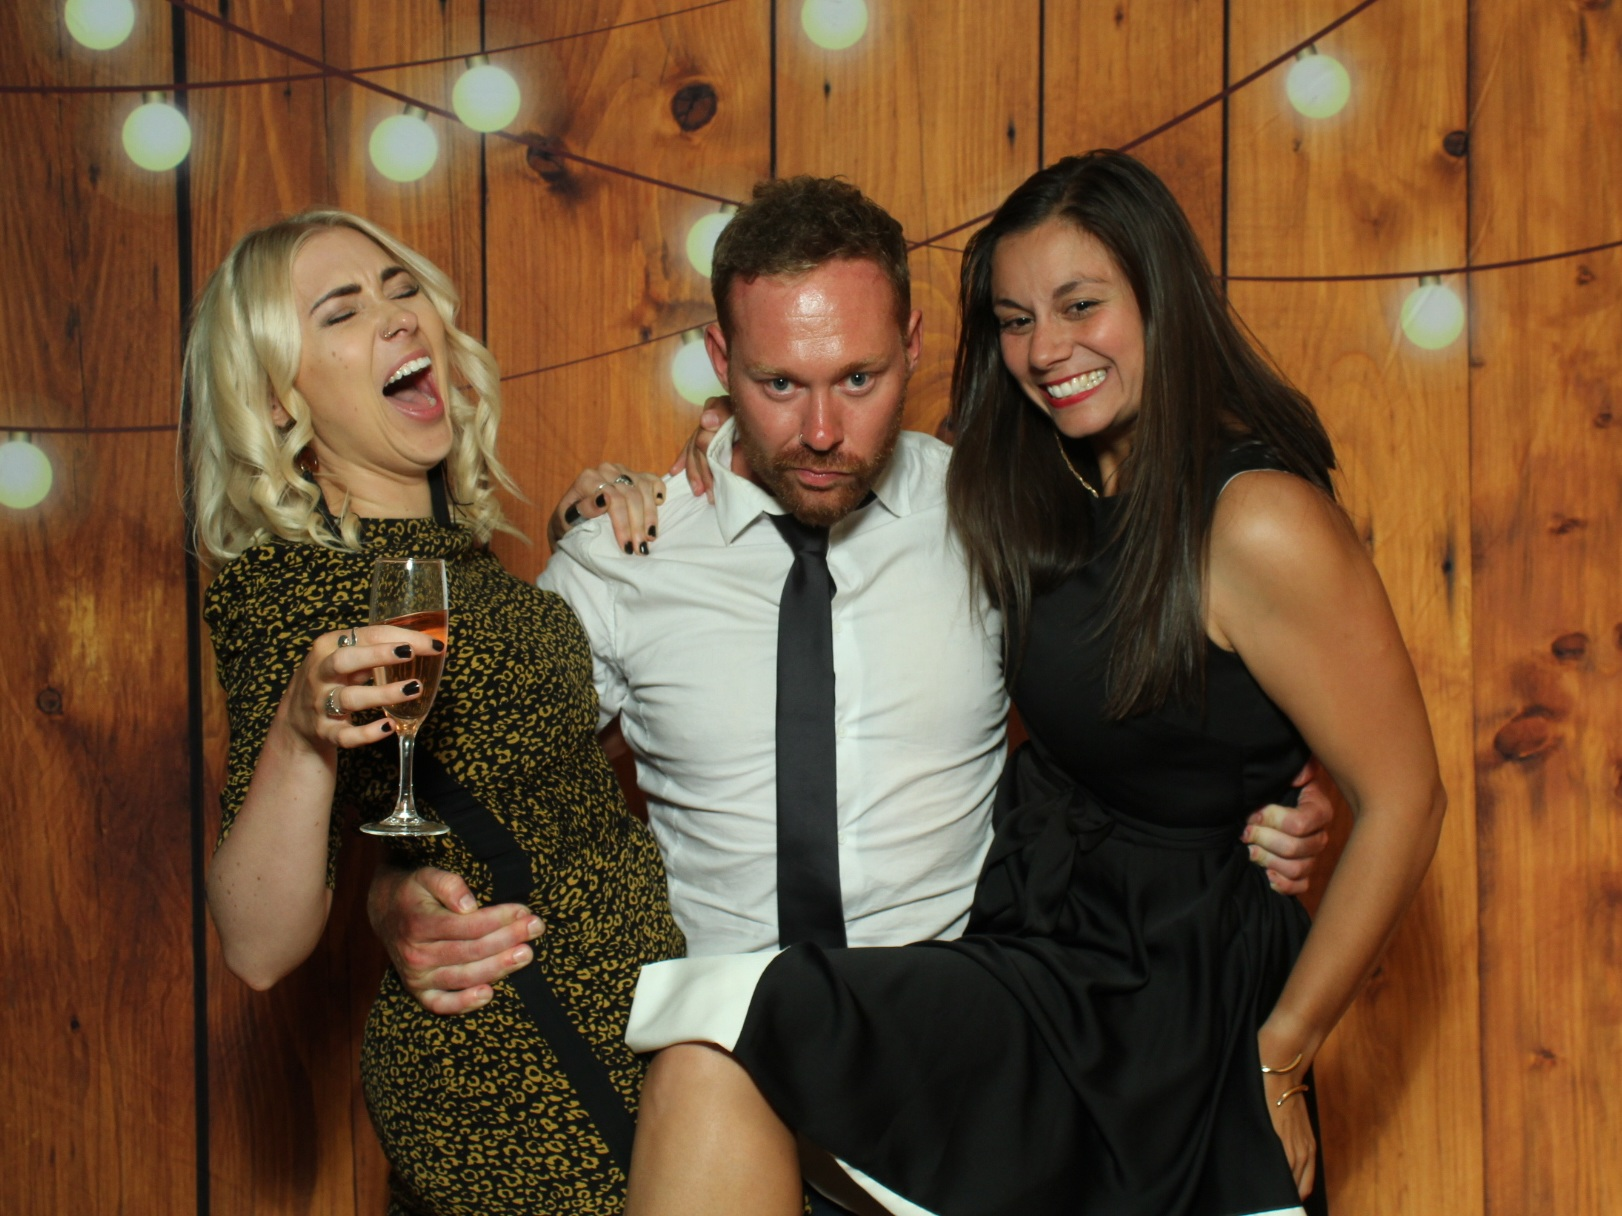 And let's be honest…  - …there isn't much that tops an open bar, but we'd be willing to bet a photo booth will add just as much fun & entertainment to your party! Put the two together, and you're pretty much guaranteed some unforgettable photos the next day.